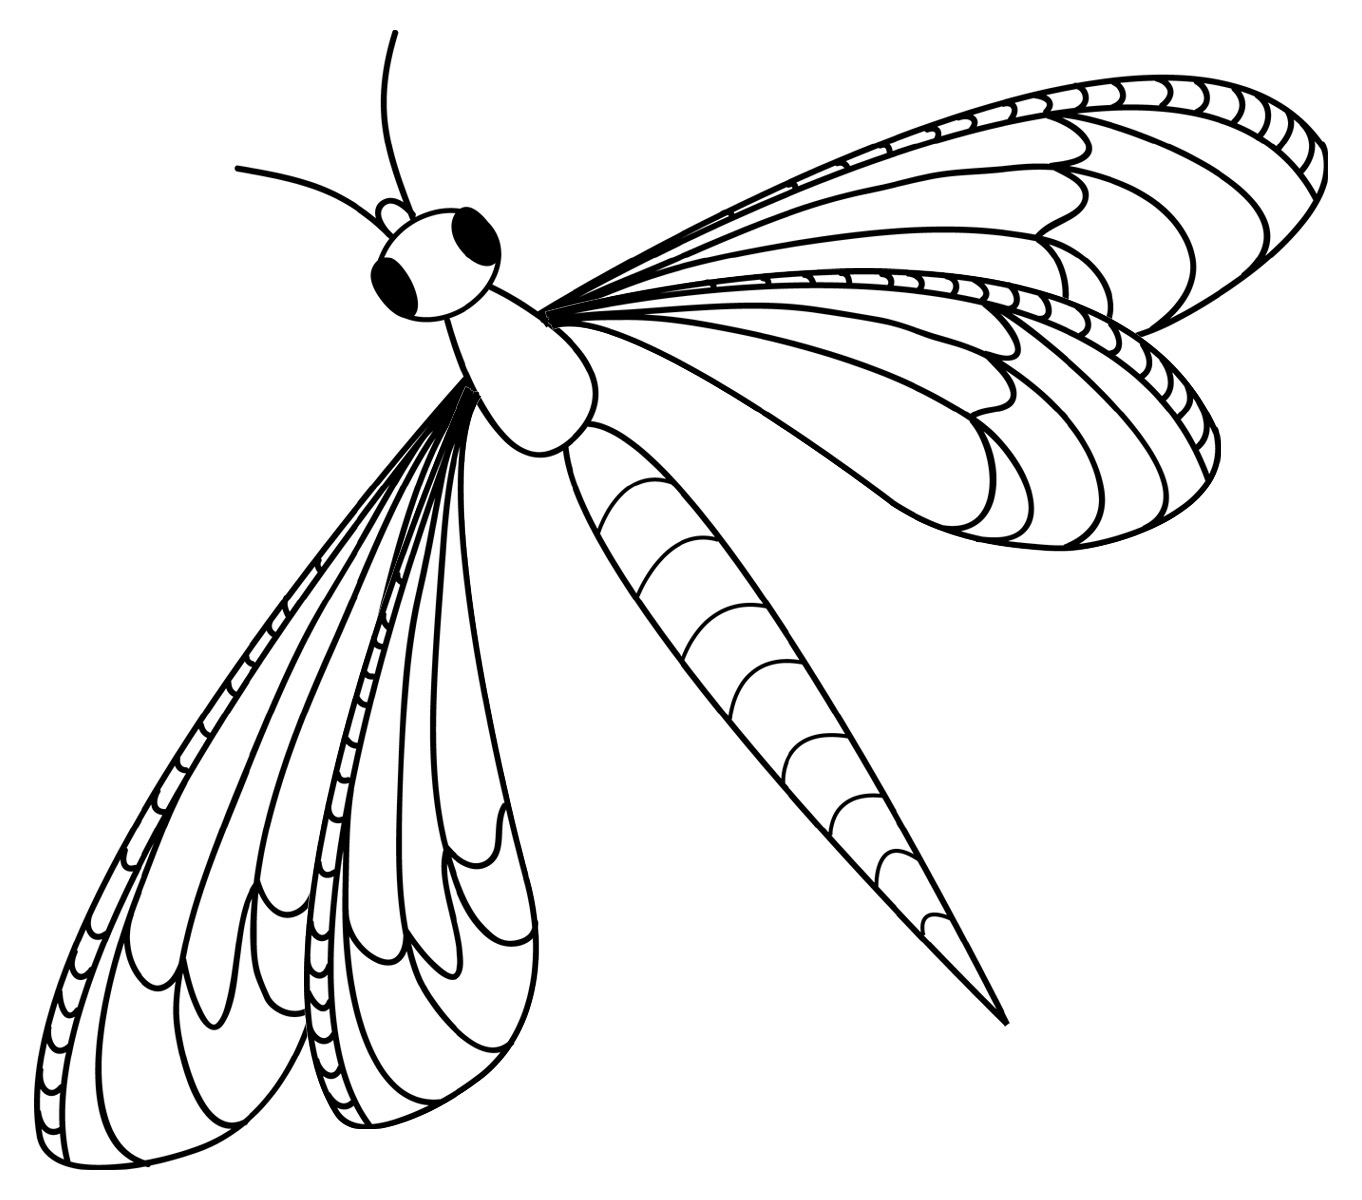 how to draw a dragonfly for kids realistic dragonfly coloring page free animal coloring how kids draw a dragonfly to for